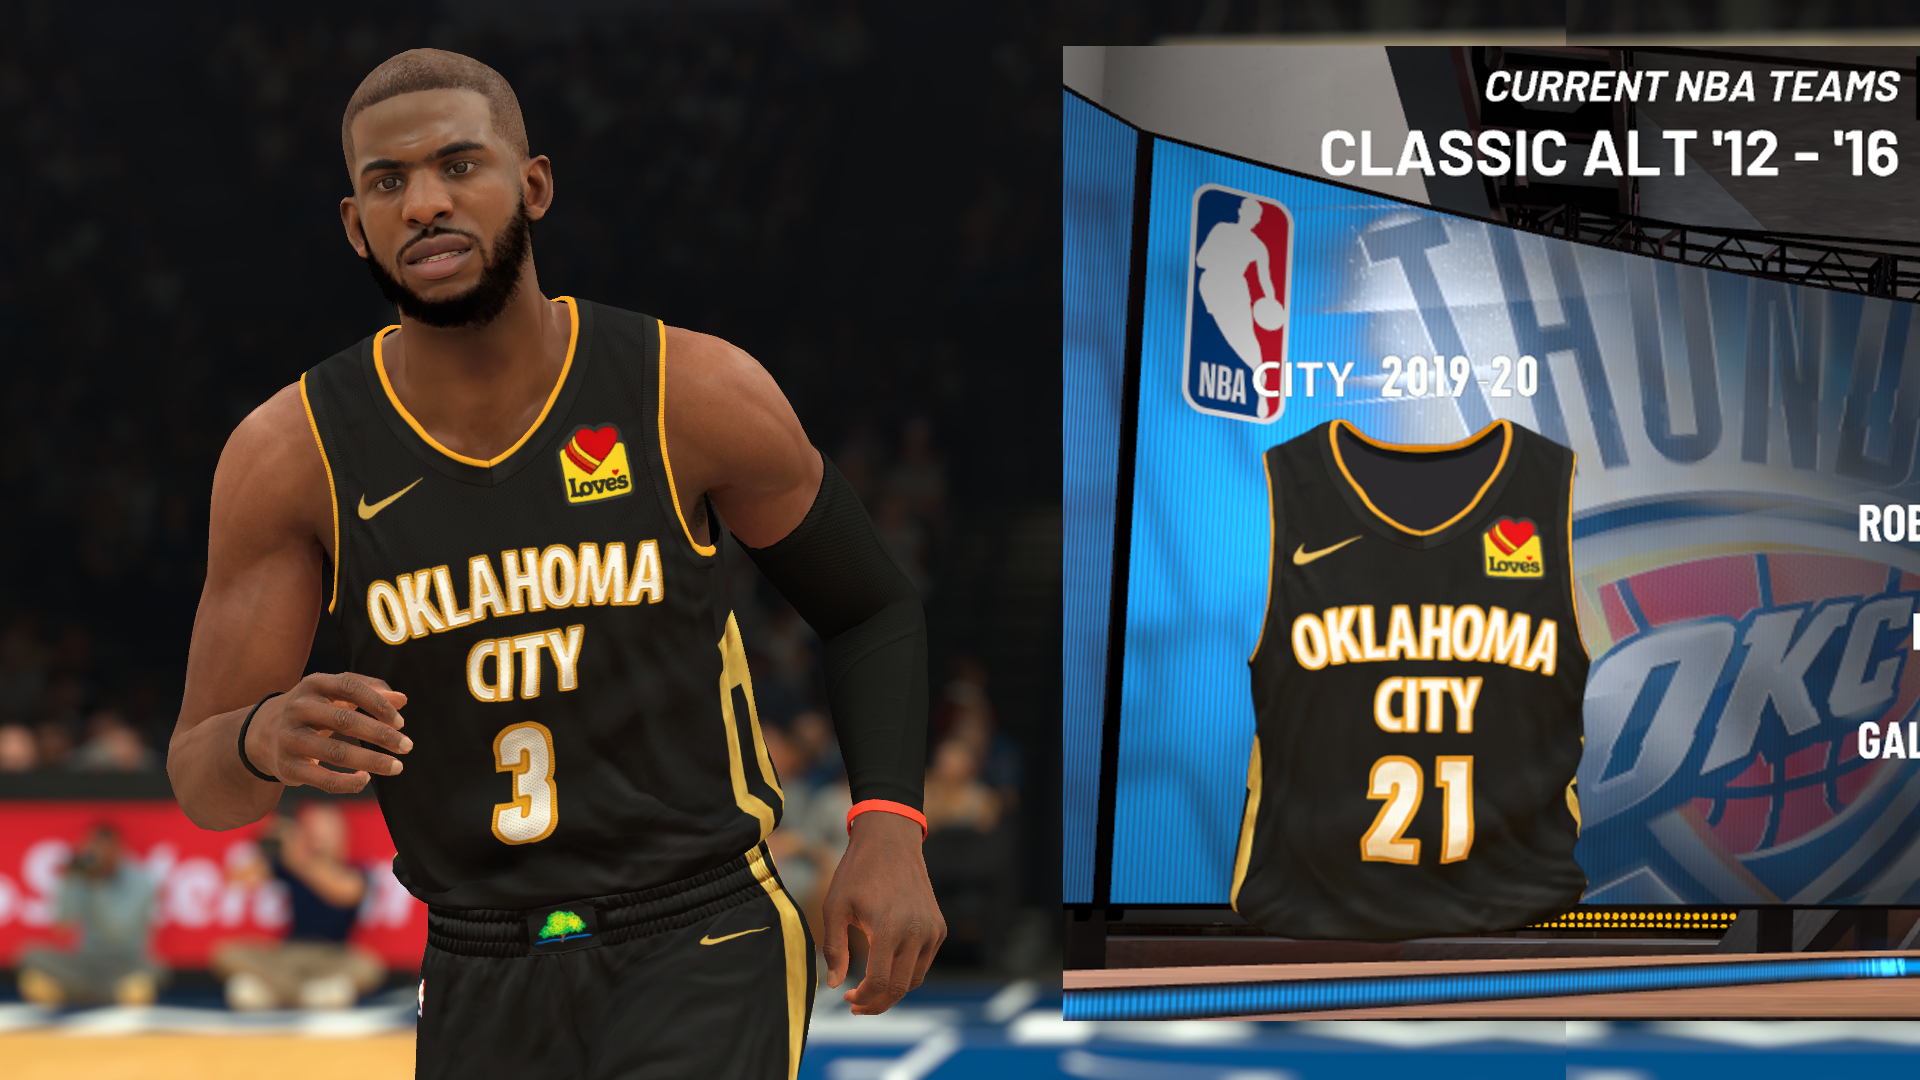 Oklahoma City Thunder 2019-20 City Edition Jersey (pinoy21)